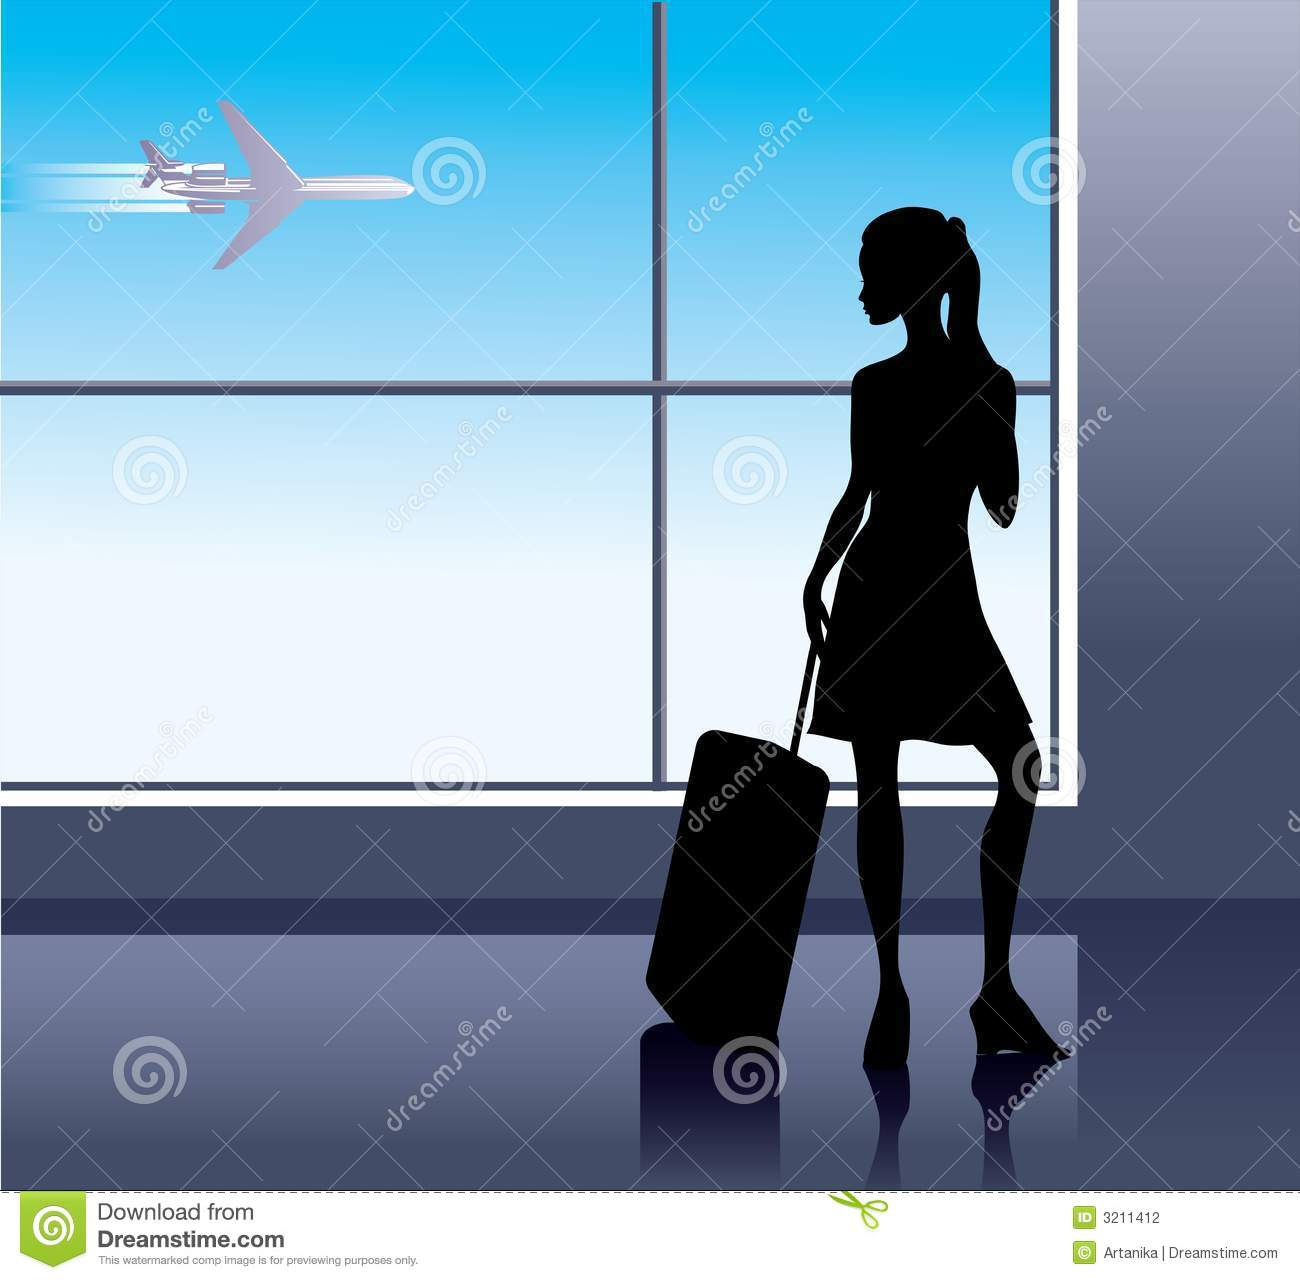 Girl in Airport